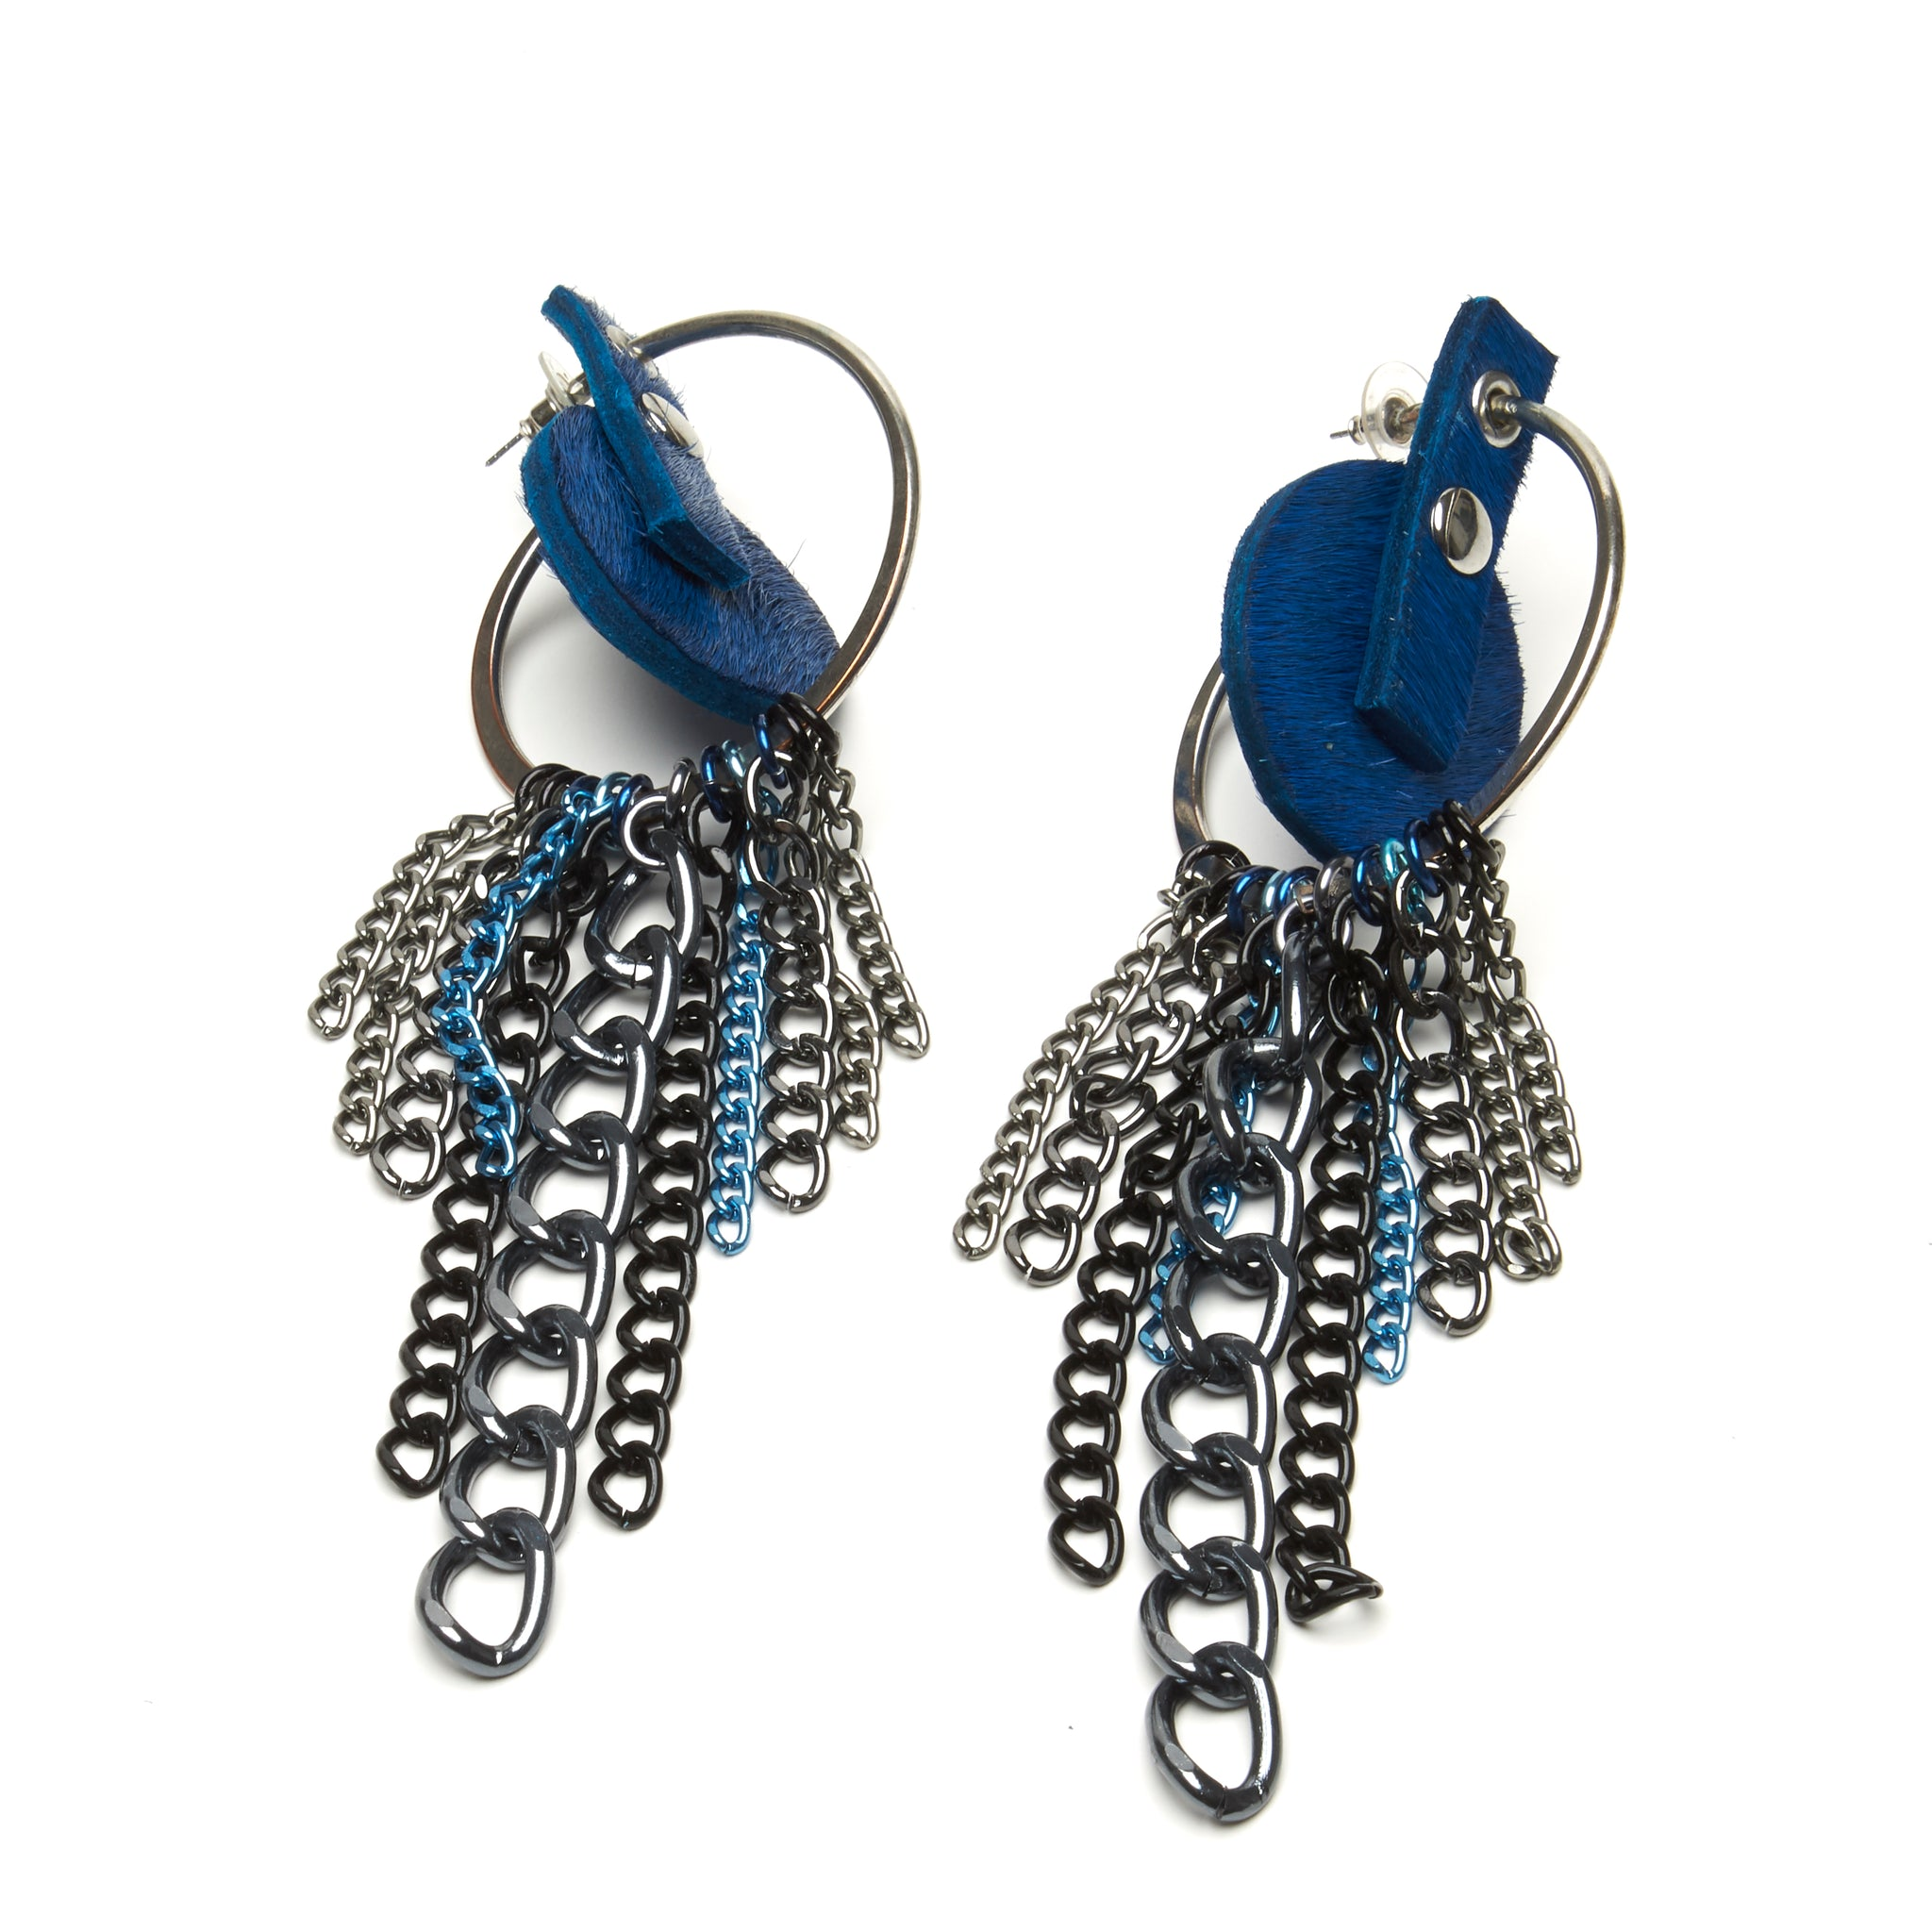 COBALT BLUE HAIR-ON COWHIDE DISC EARRINGS WITH CLUSTER OF CHAINS IN ASSORTED STYLES AND COLORS. by nyet jewelry.